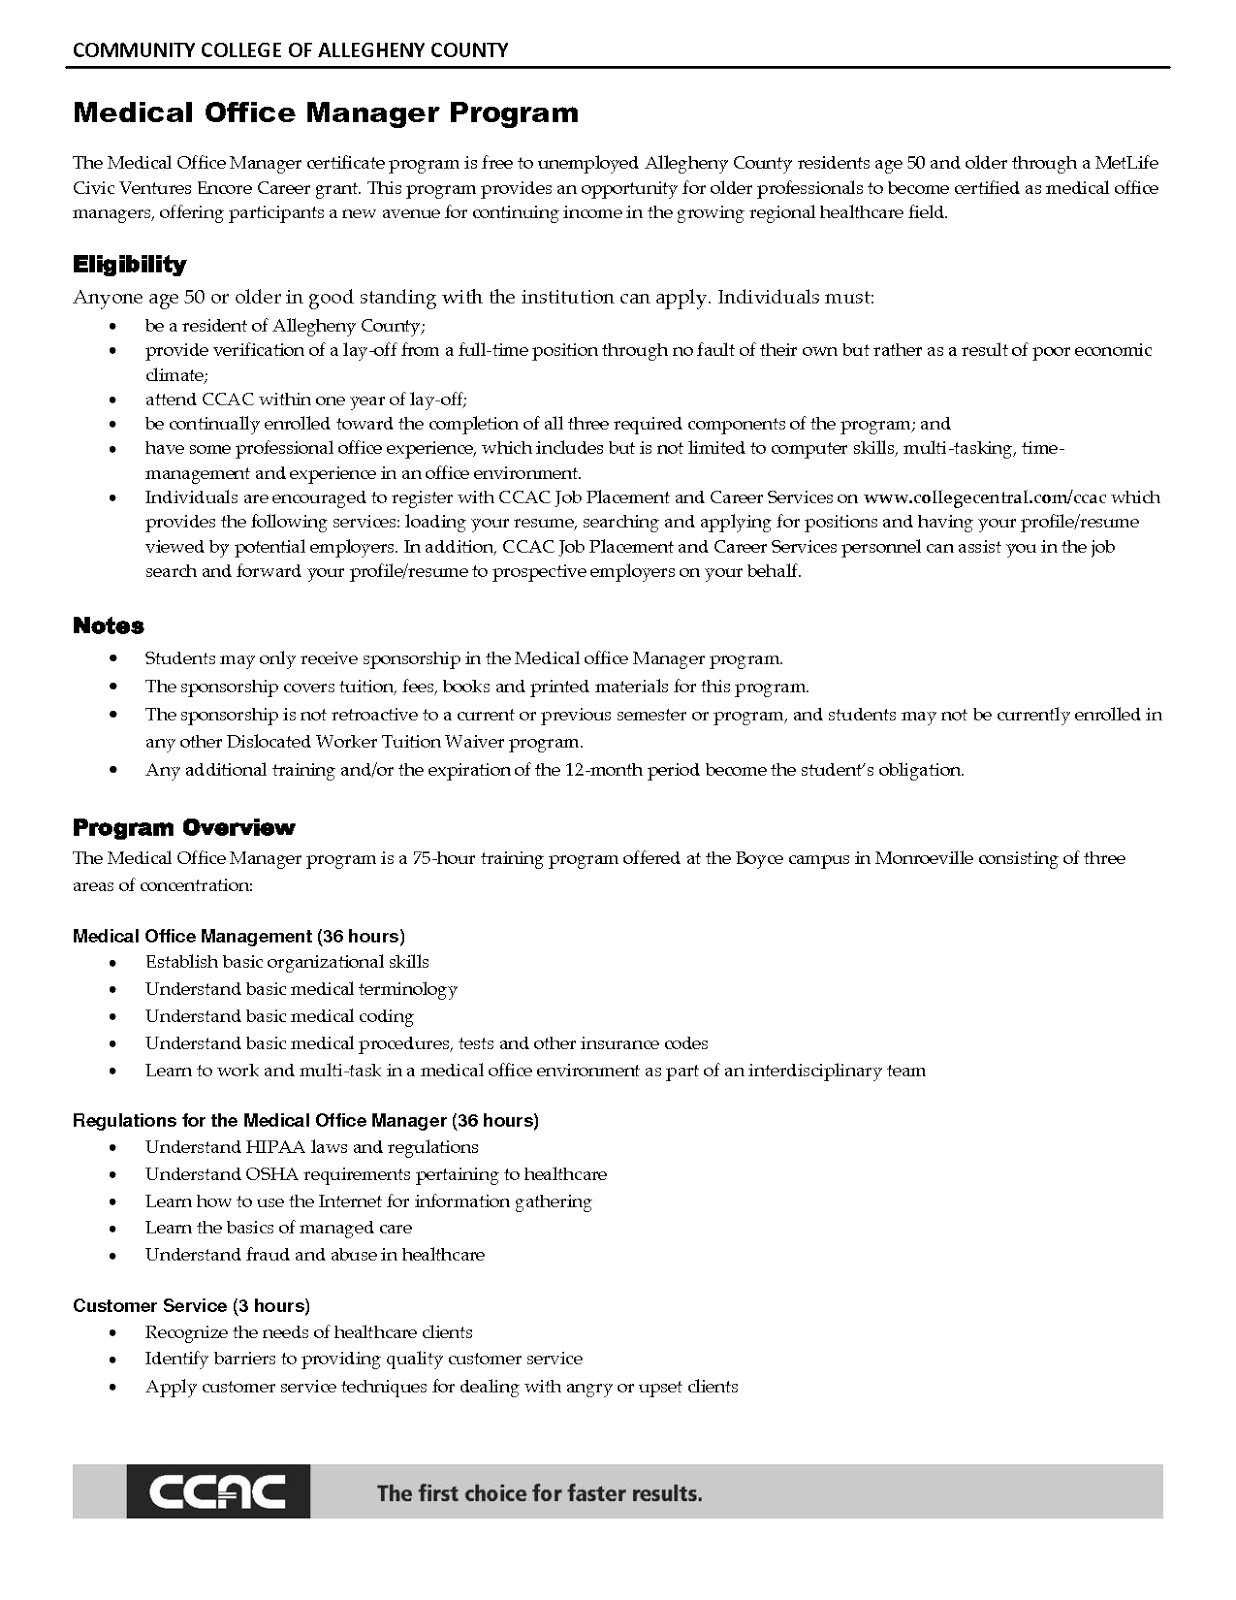 office manager resume examples 2019, office manager resume examples, office manager resume examples 2017, front office manager resume samples, office manager resume example, office manager resume samples 2018, office manager resume samples free, office manager resume samples 2019,